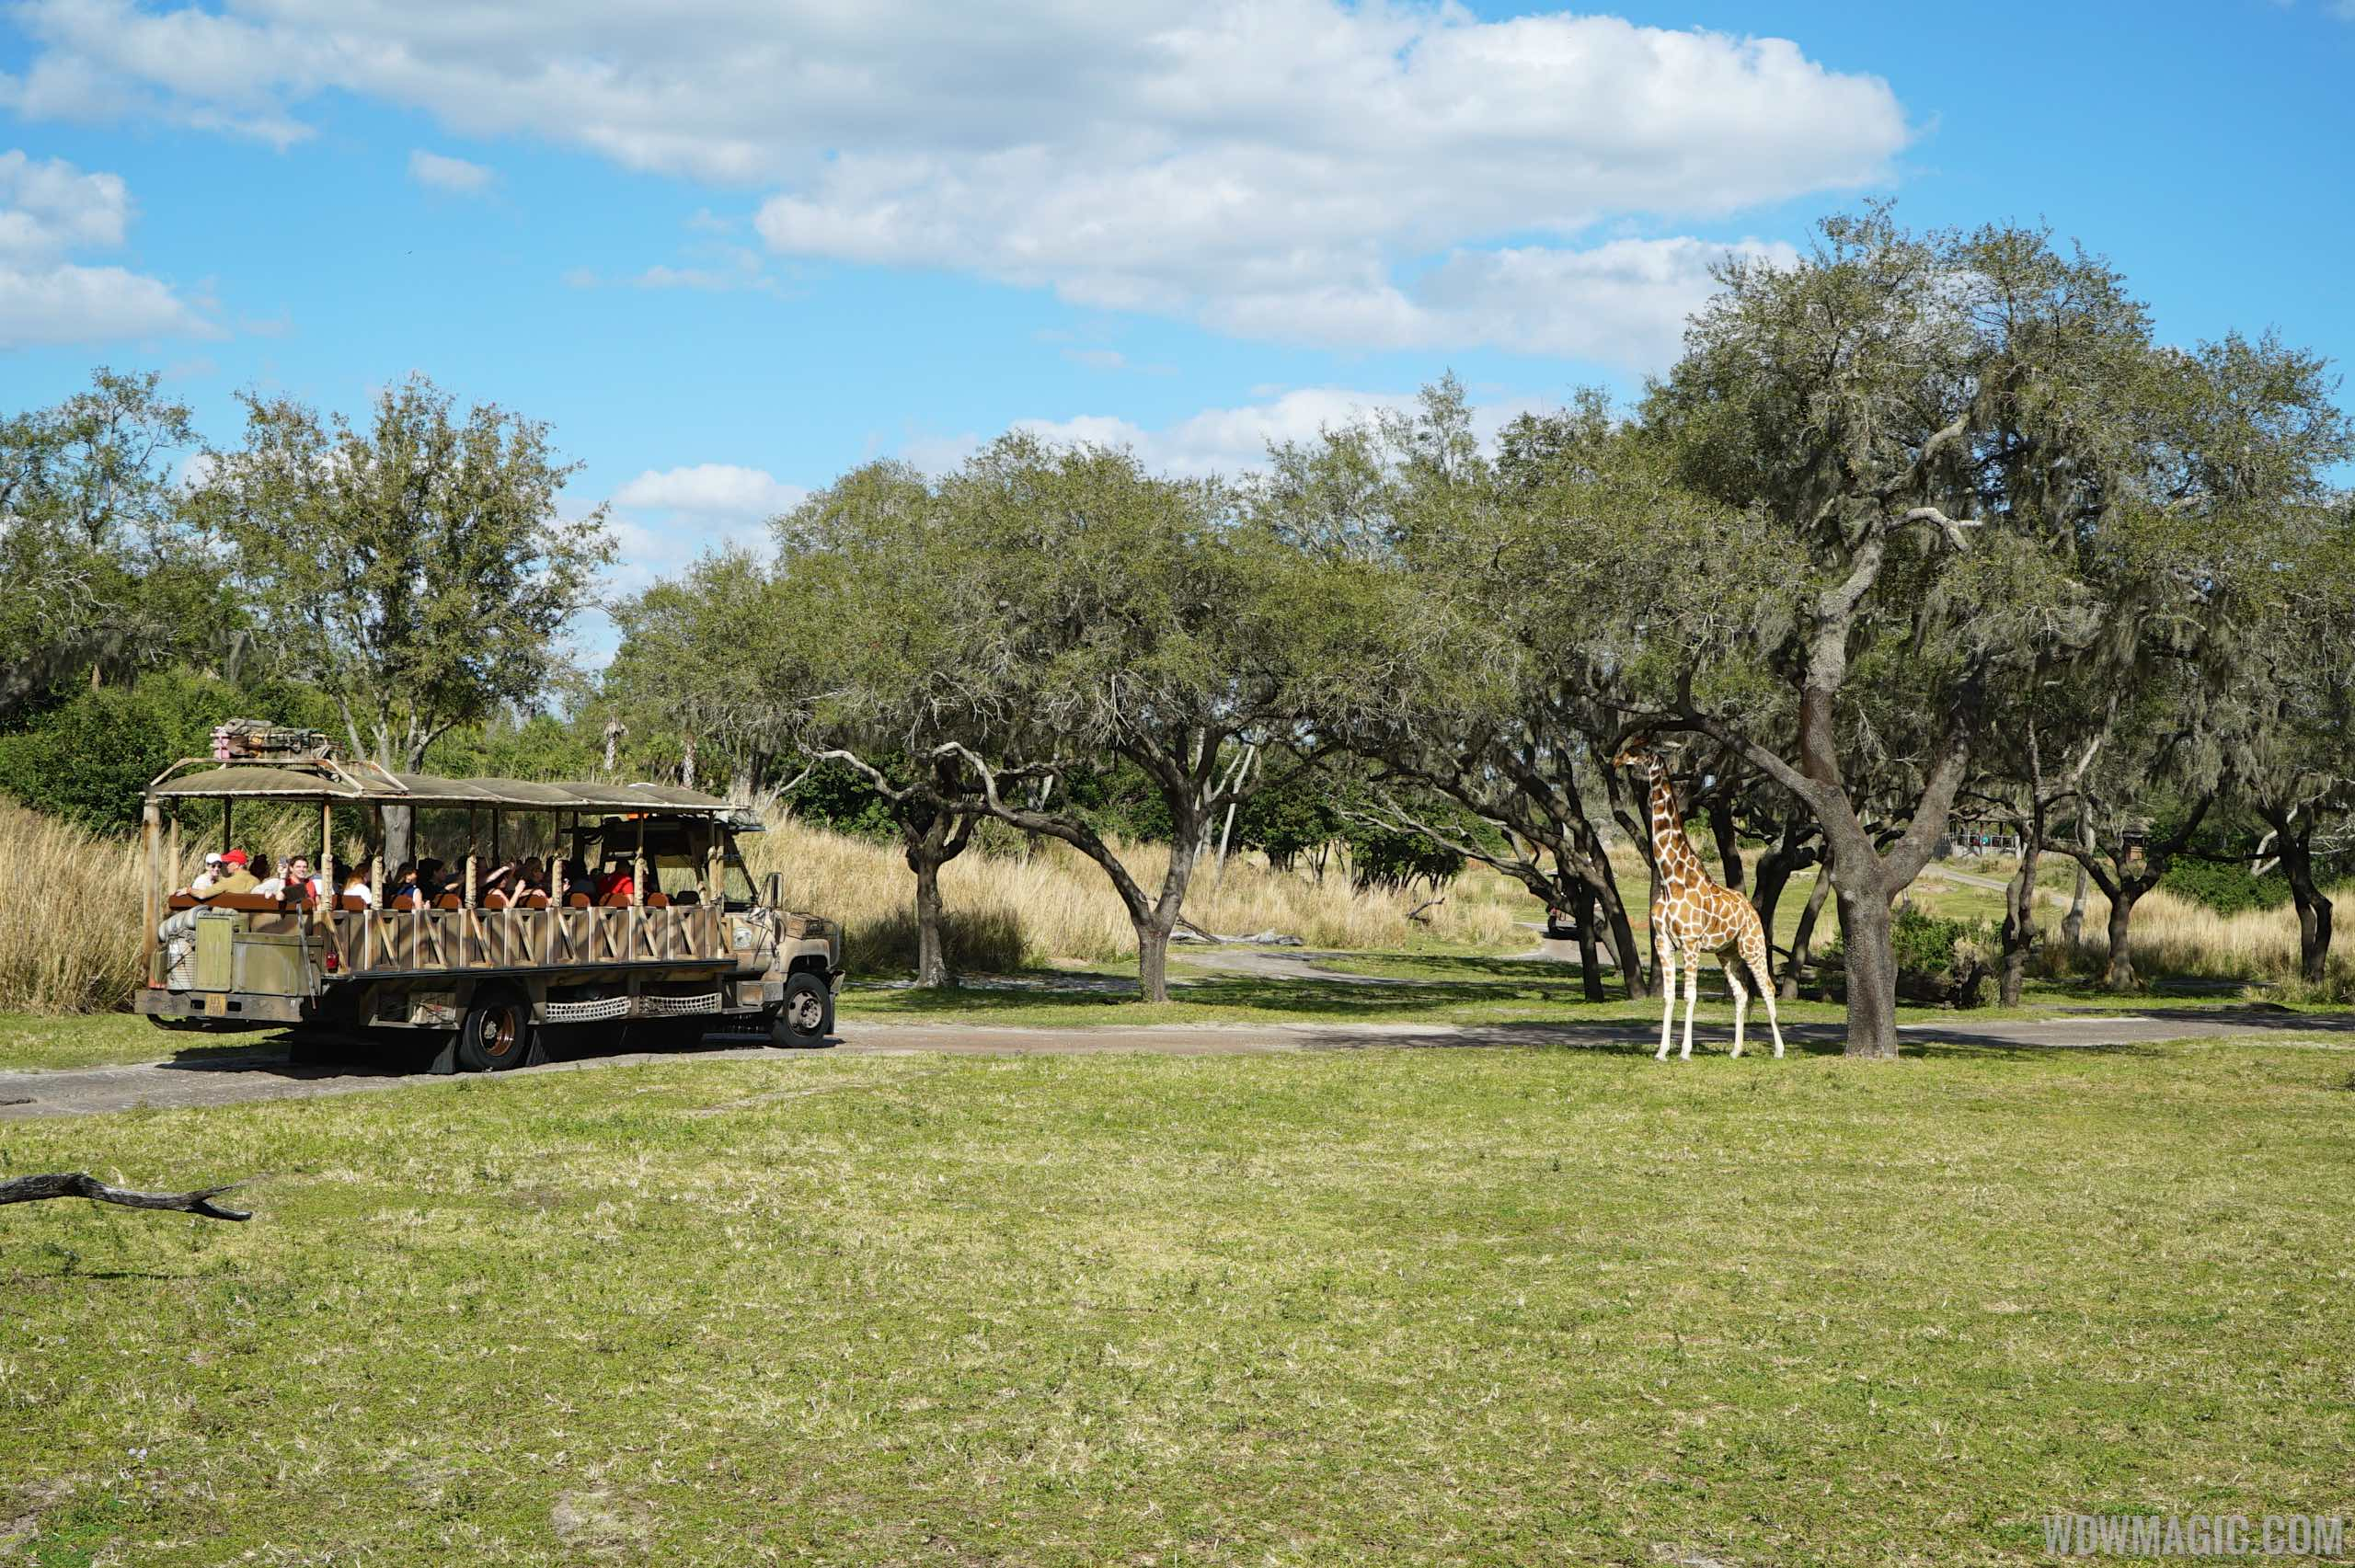 The African Savannah at Disney's Animal Kingdom